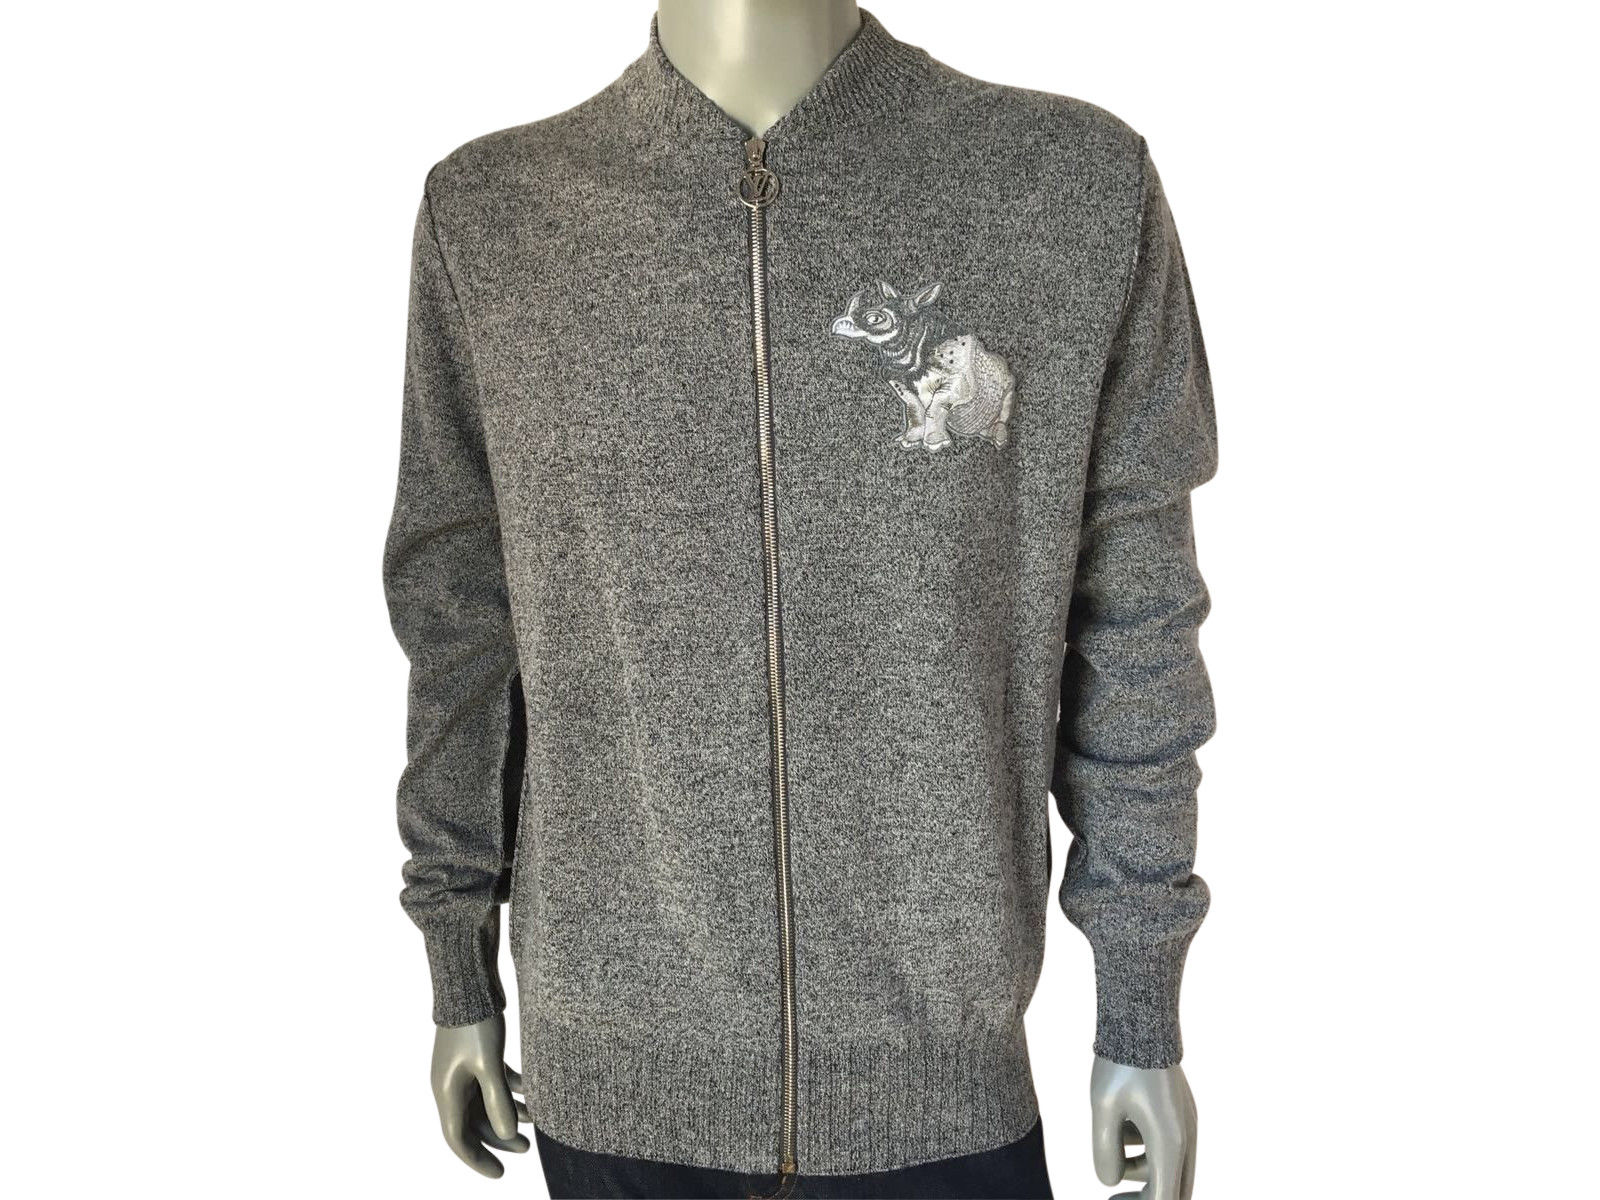 1230c9b95f57 Limited Chapman Rhinoceros Patch Sweater – Luxuria   Co.